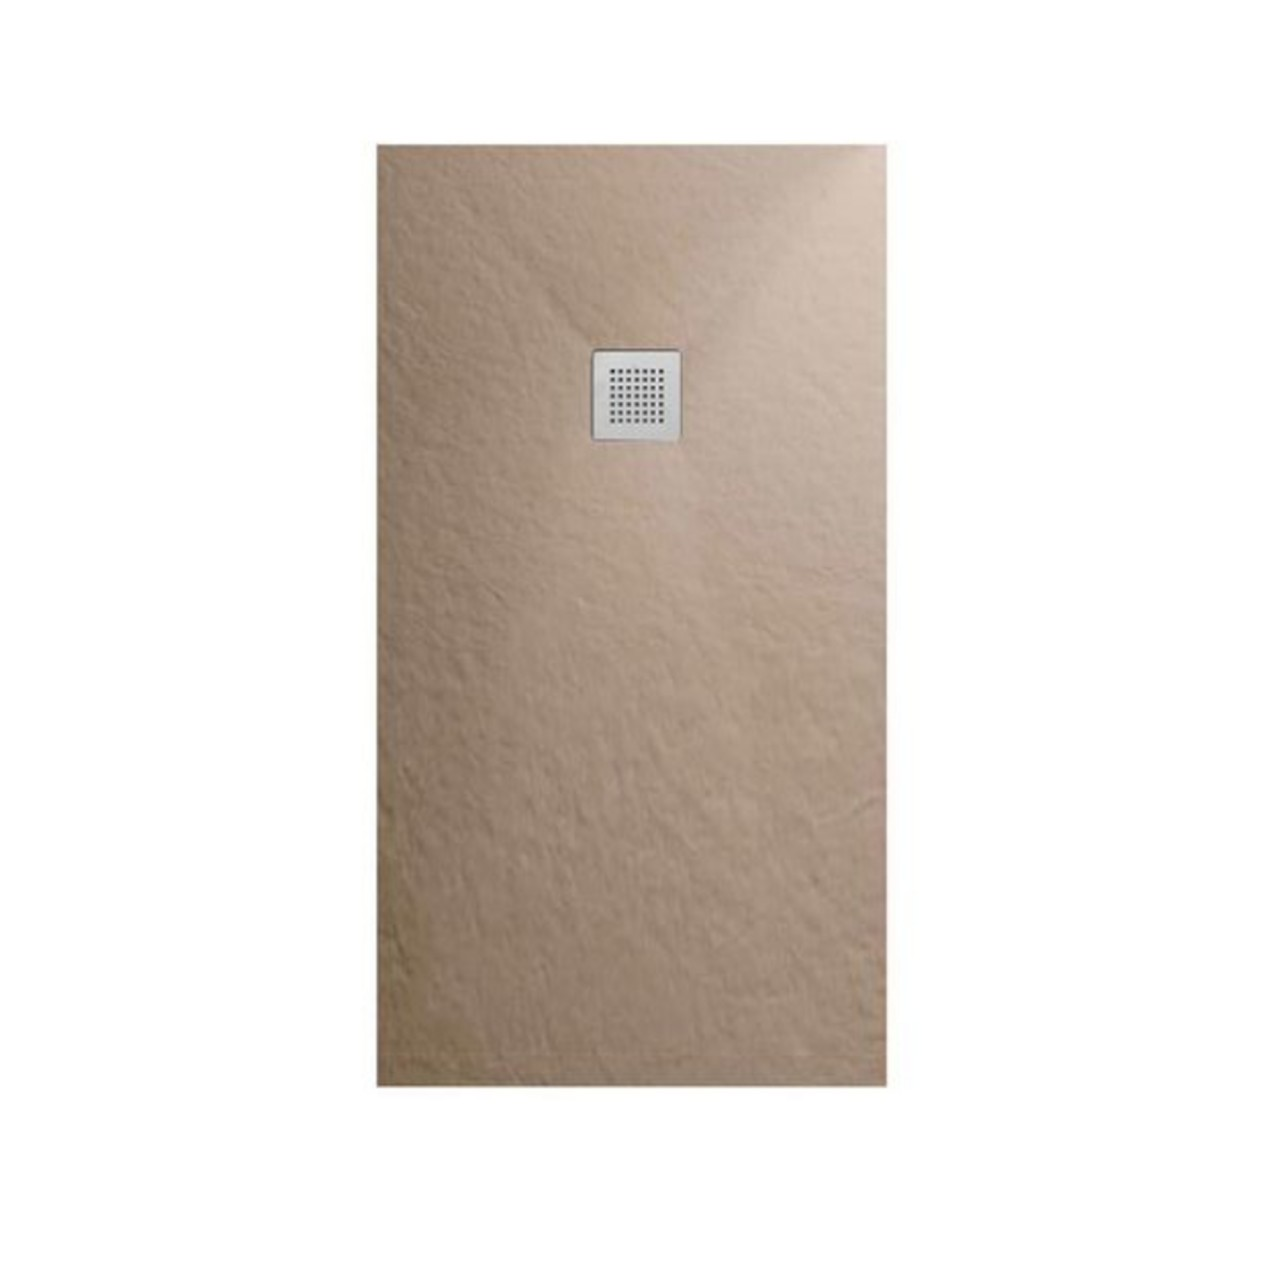 PIATTO DOCCIA SAND 80X140 ALTHEA IN MINERAL SP 3CM SERIE LONDON